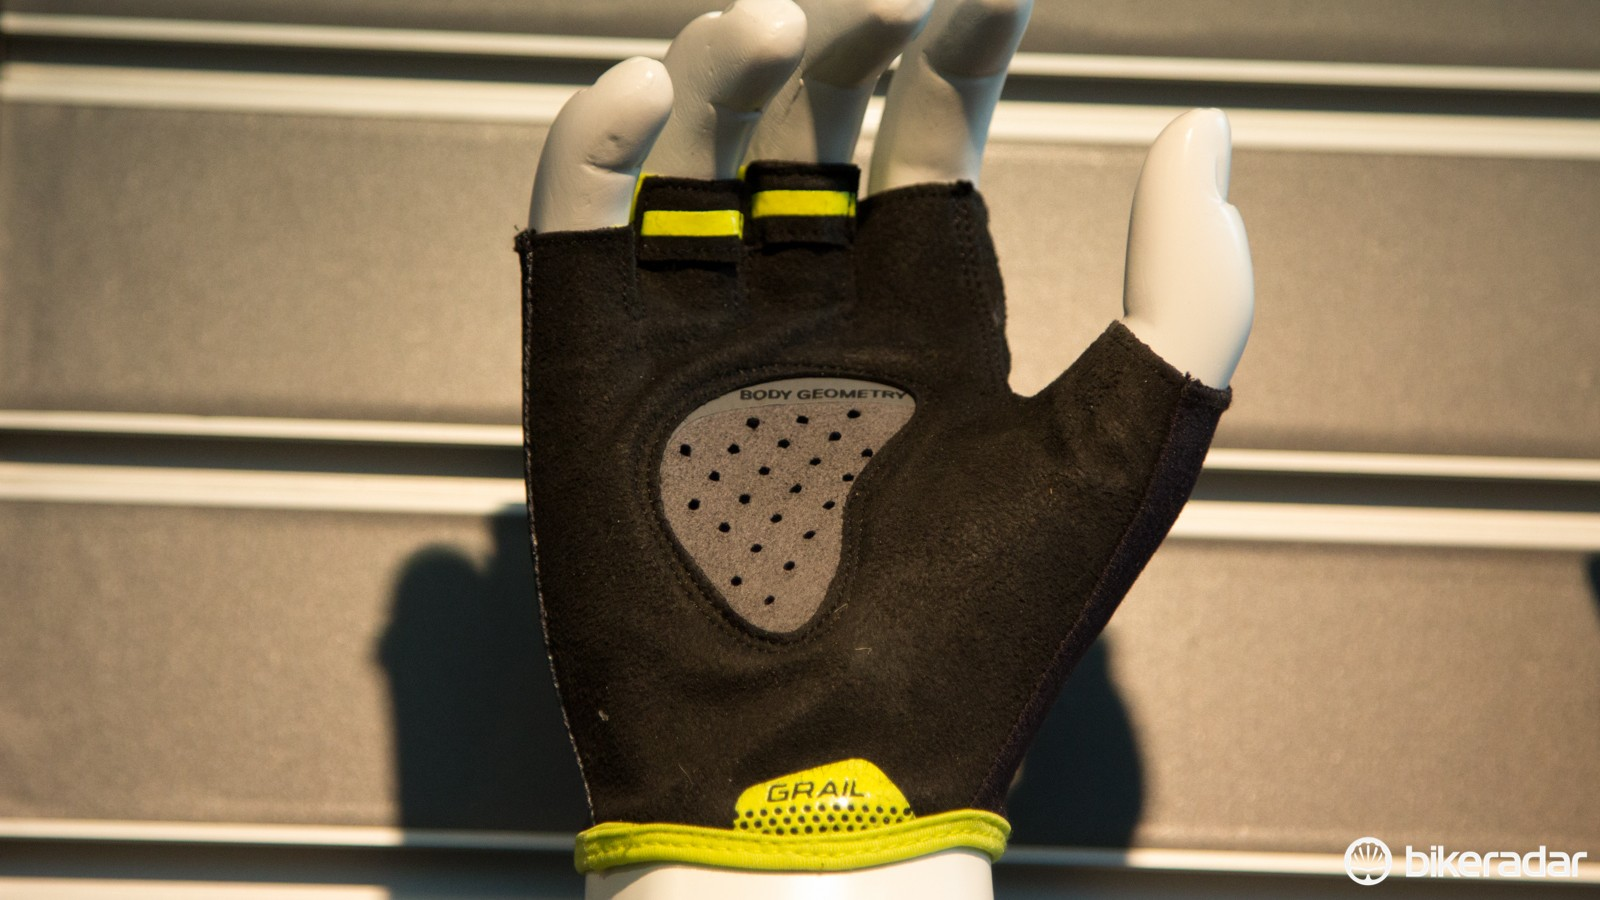 The Grail glove, which generated plenty of chat, places the gel padding in the middle of the palm and is said to flatten the hand surface, reducing fatigue and pain